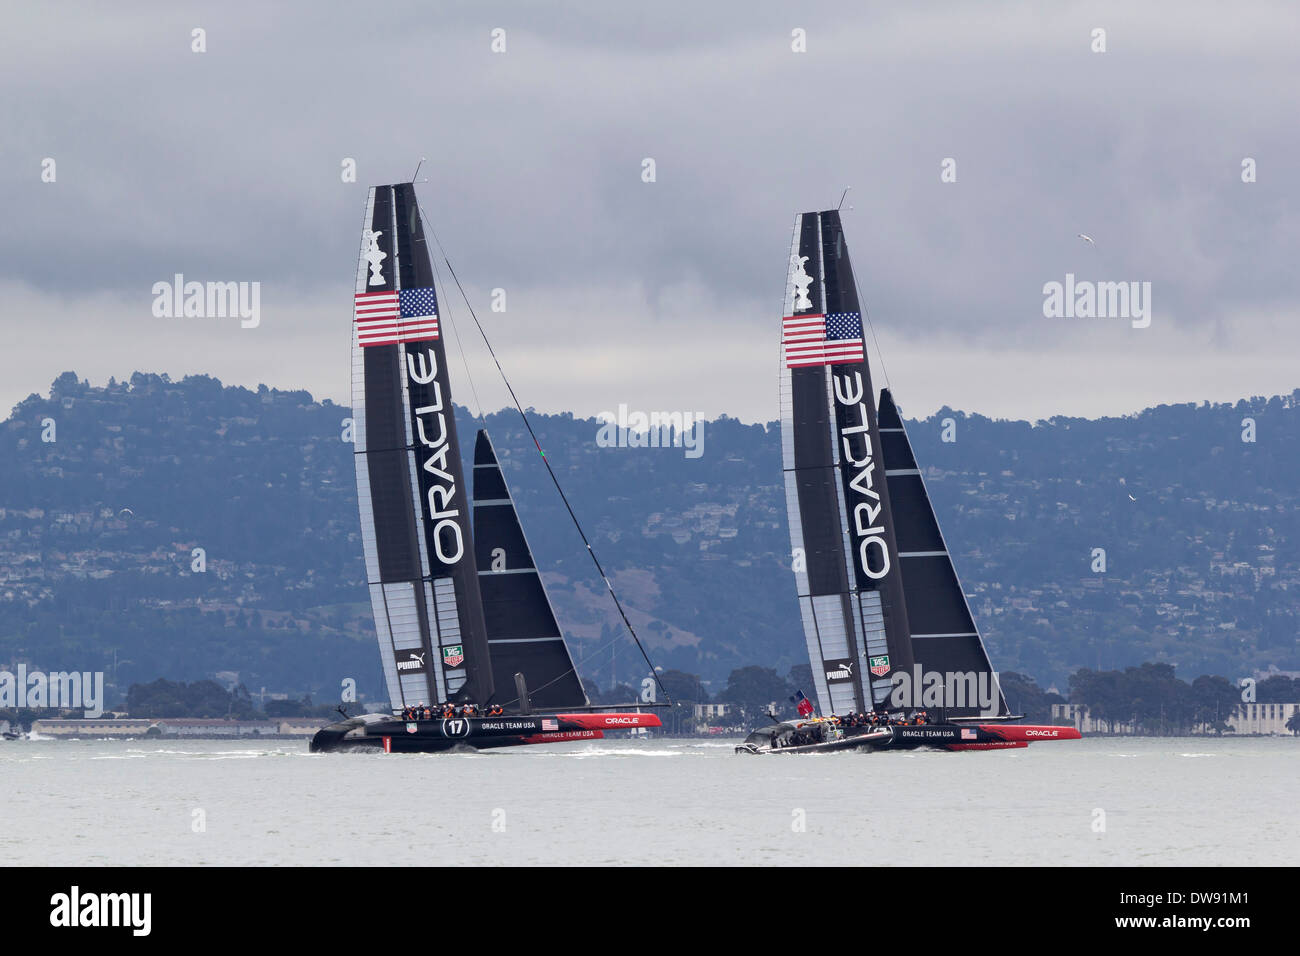 Catamarans for Oracle Team USA sail on San Francisco Bay during the 2013 Americas Cup competition. - Stock Image